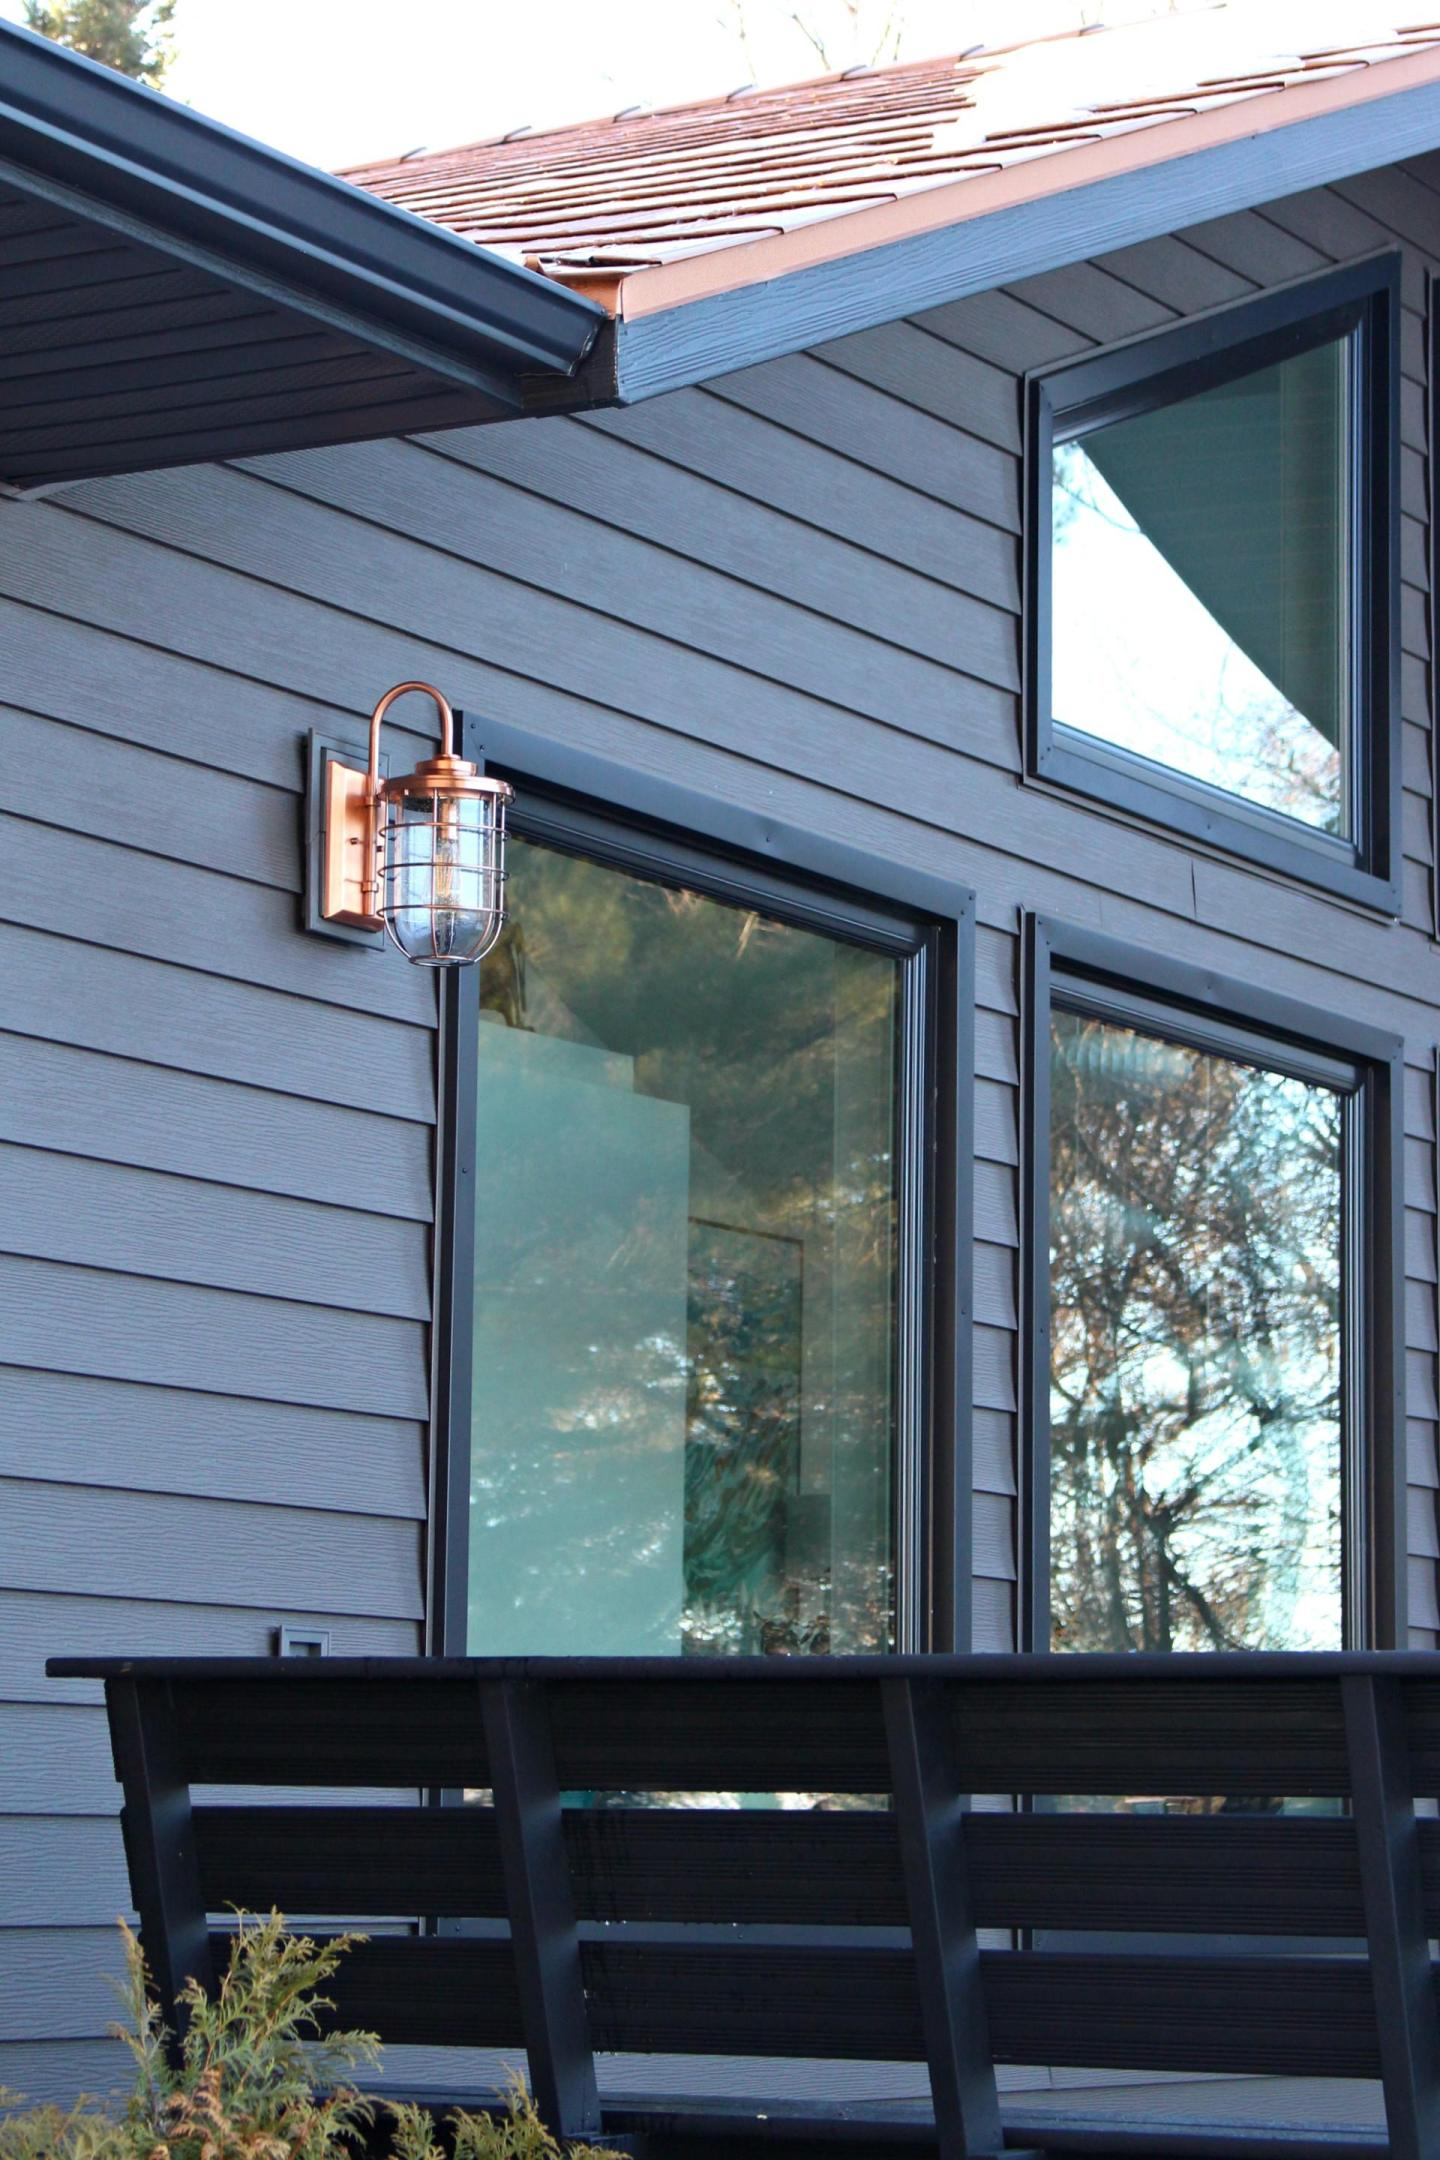 Copper Ferry Lights on Dark Grey Metal Siding with Copper Roof | Siding That Sparkles!